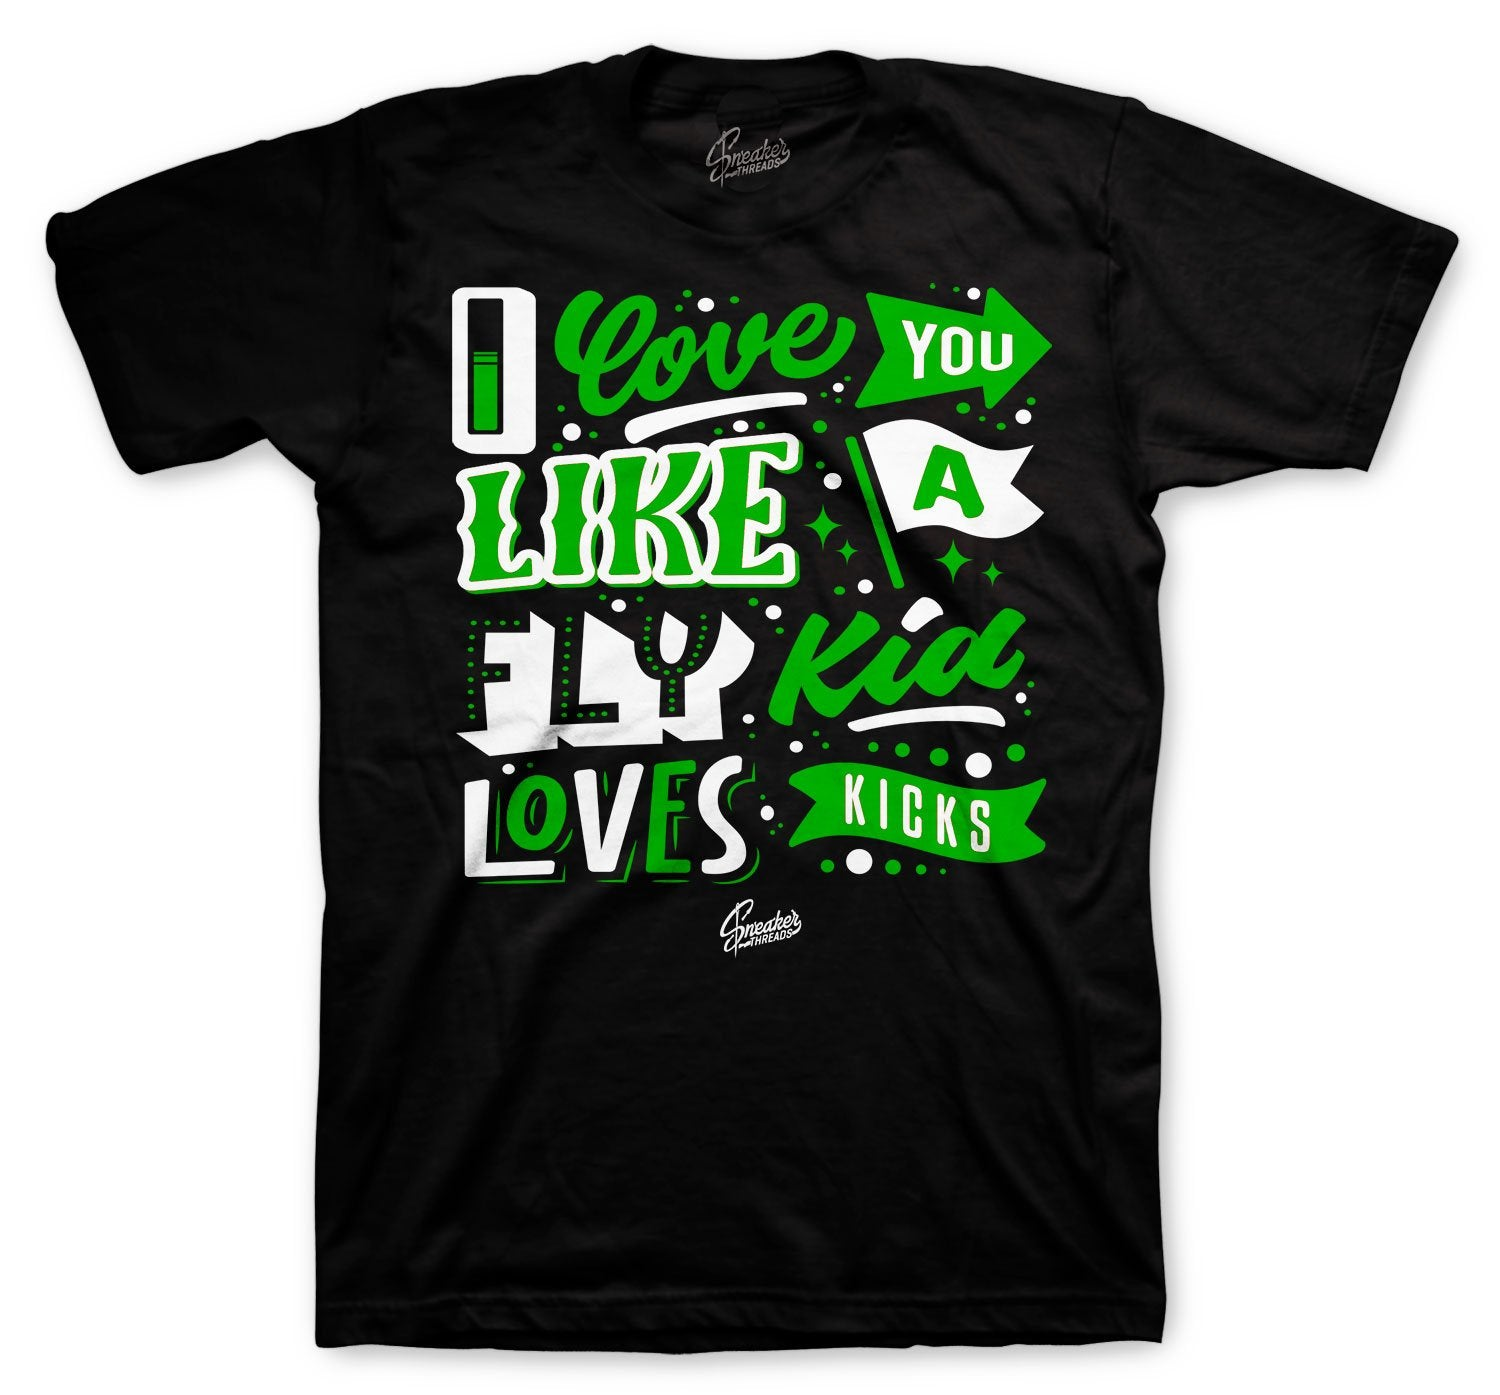 t shirt collection has matching sneaker collection Jordan 1 pine green